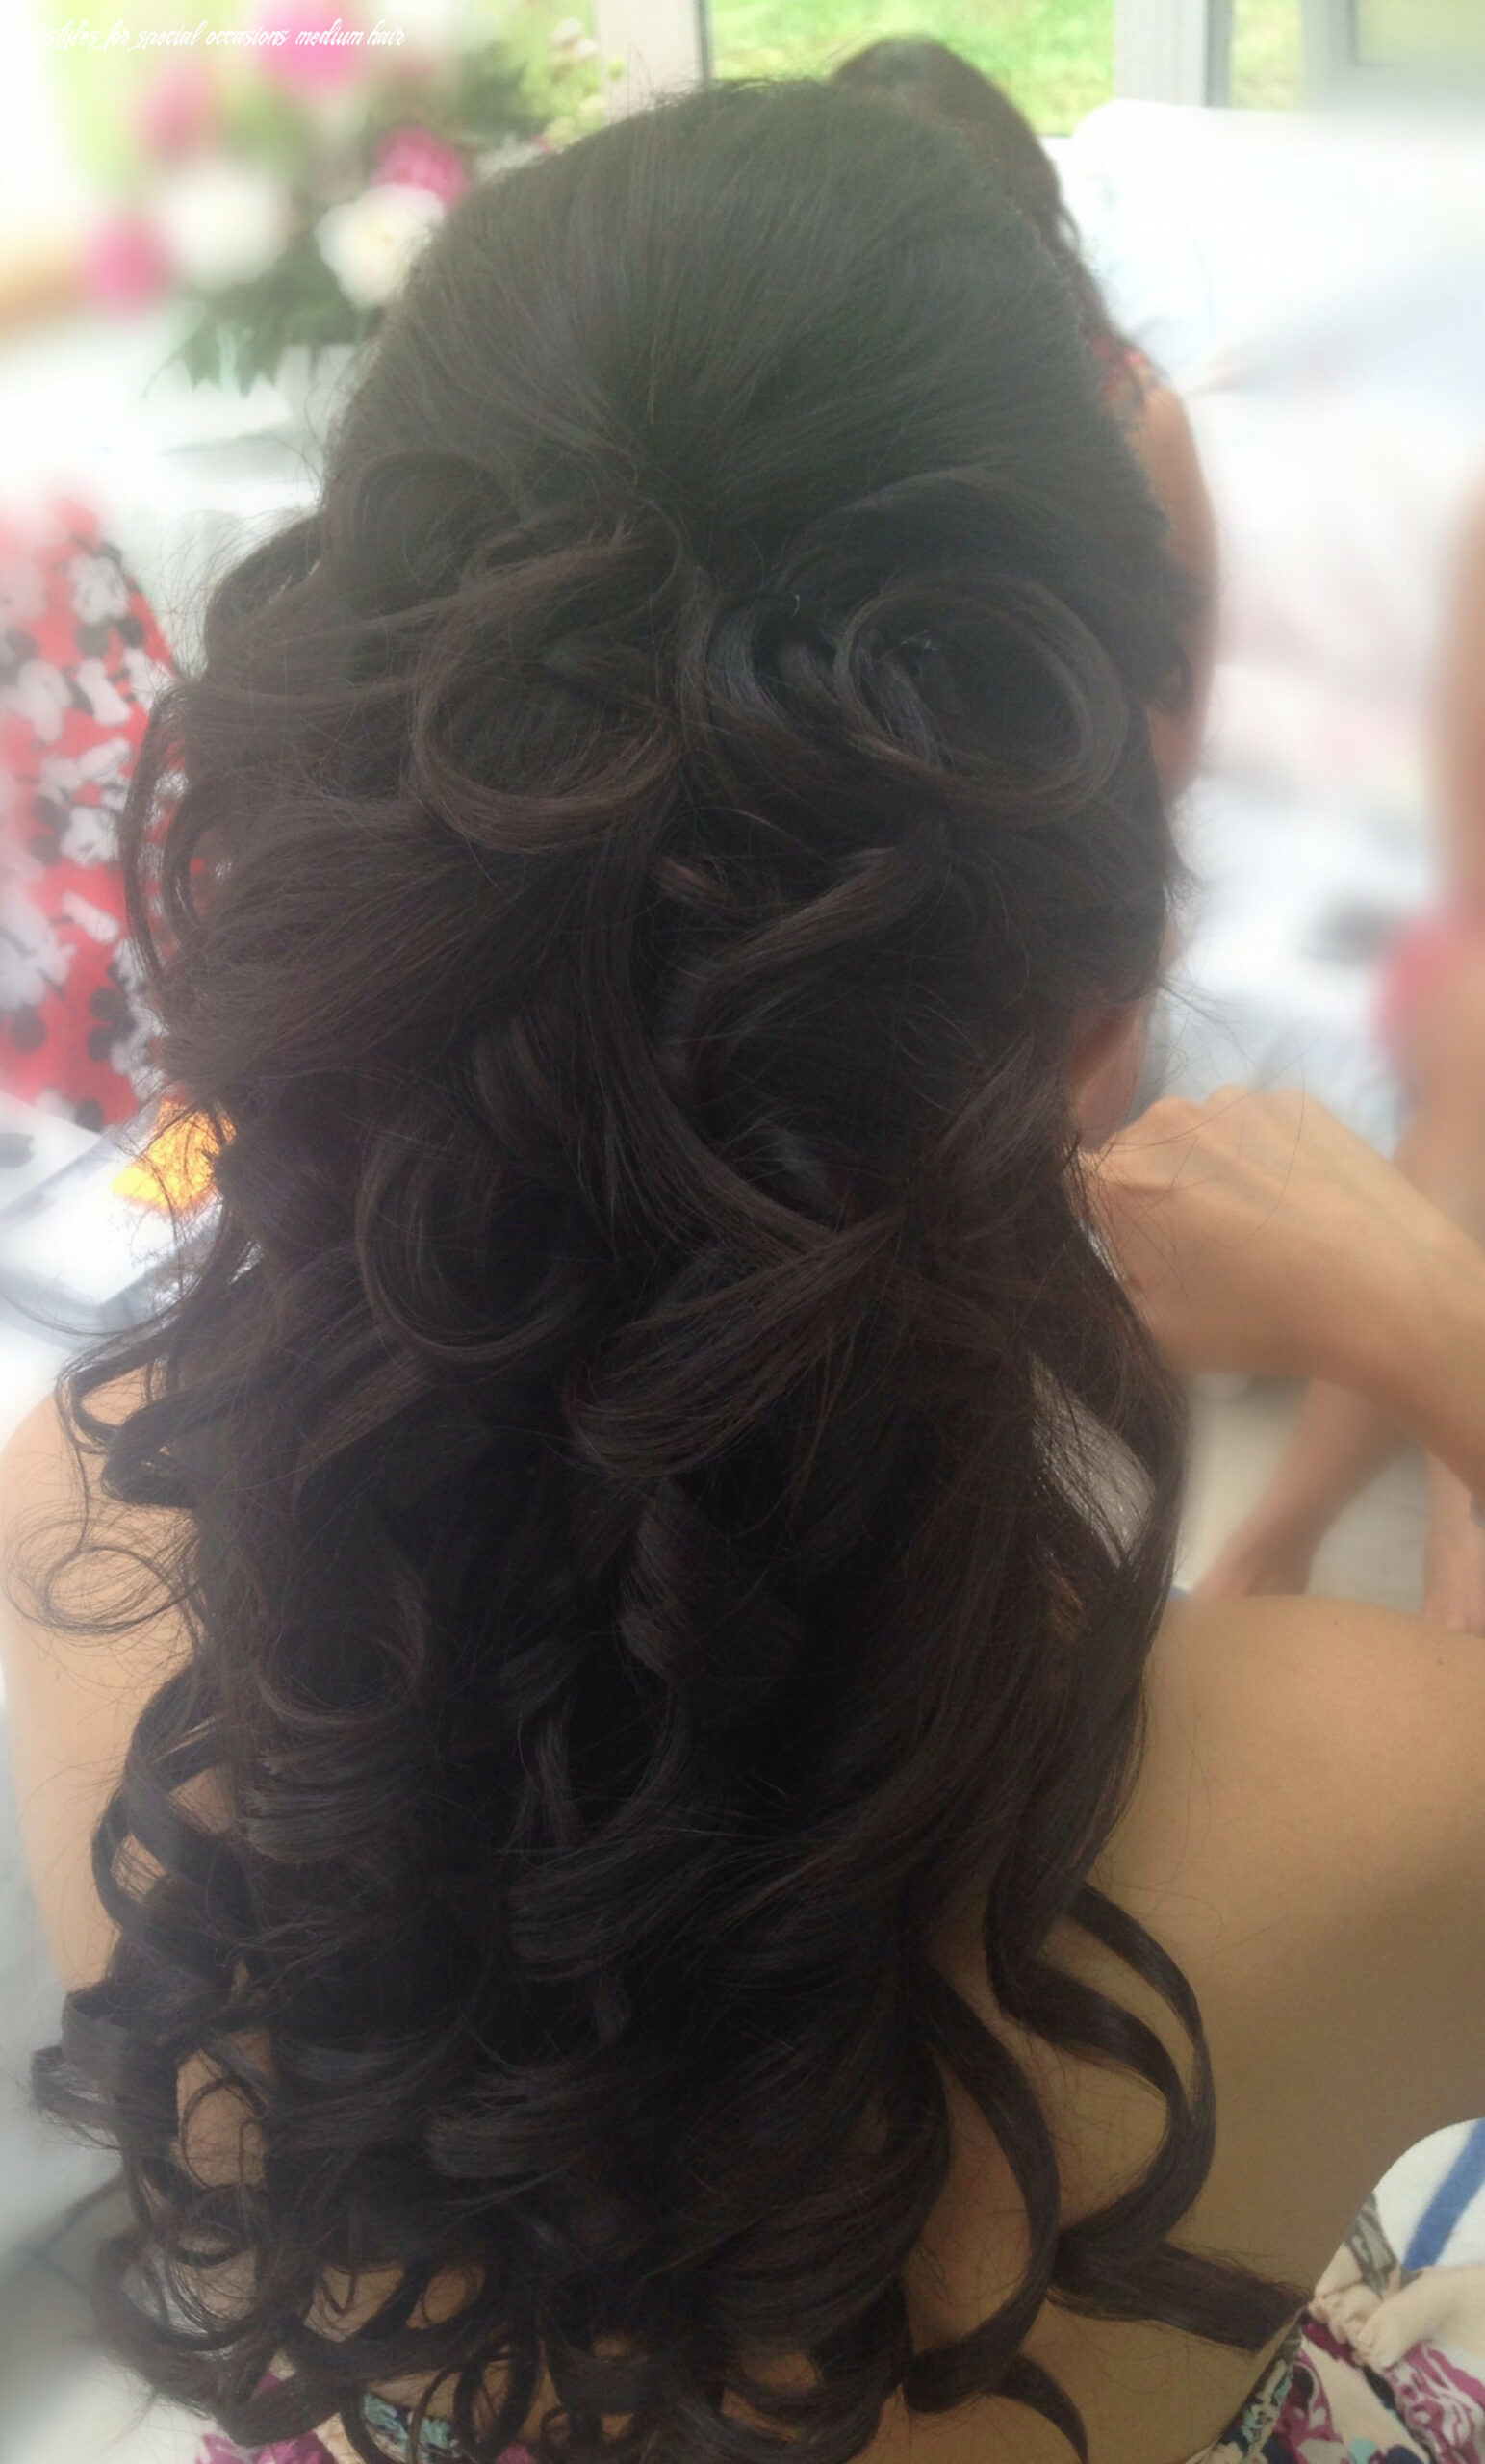 Wedding hairstyle, bridal hairstyle, special occasions, up dos and